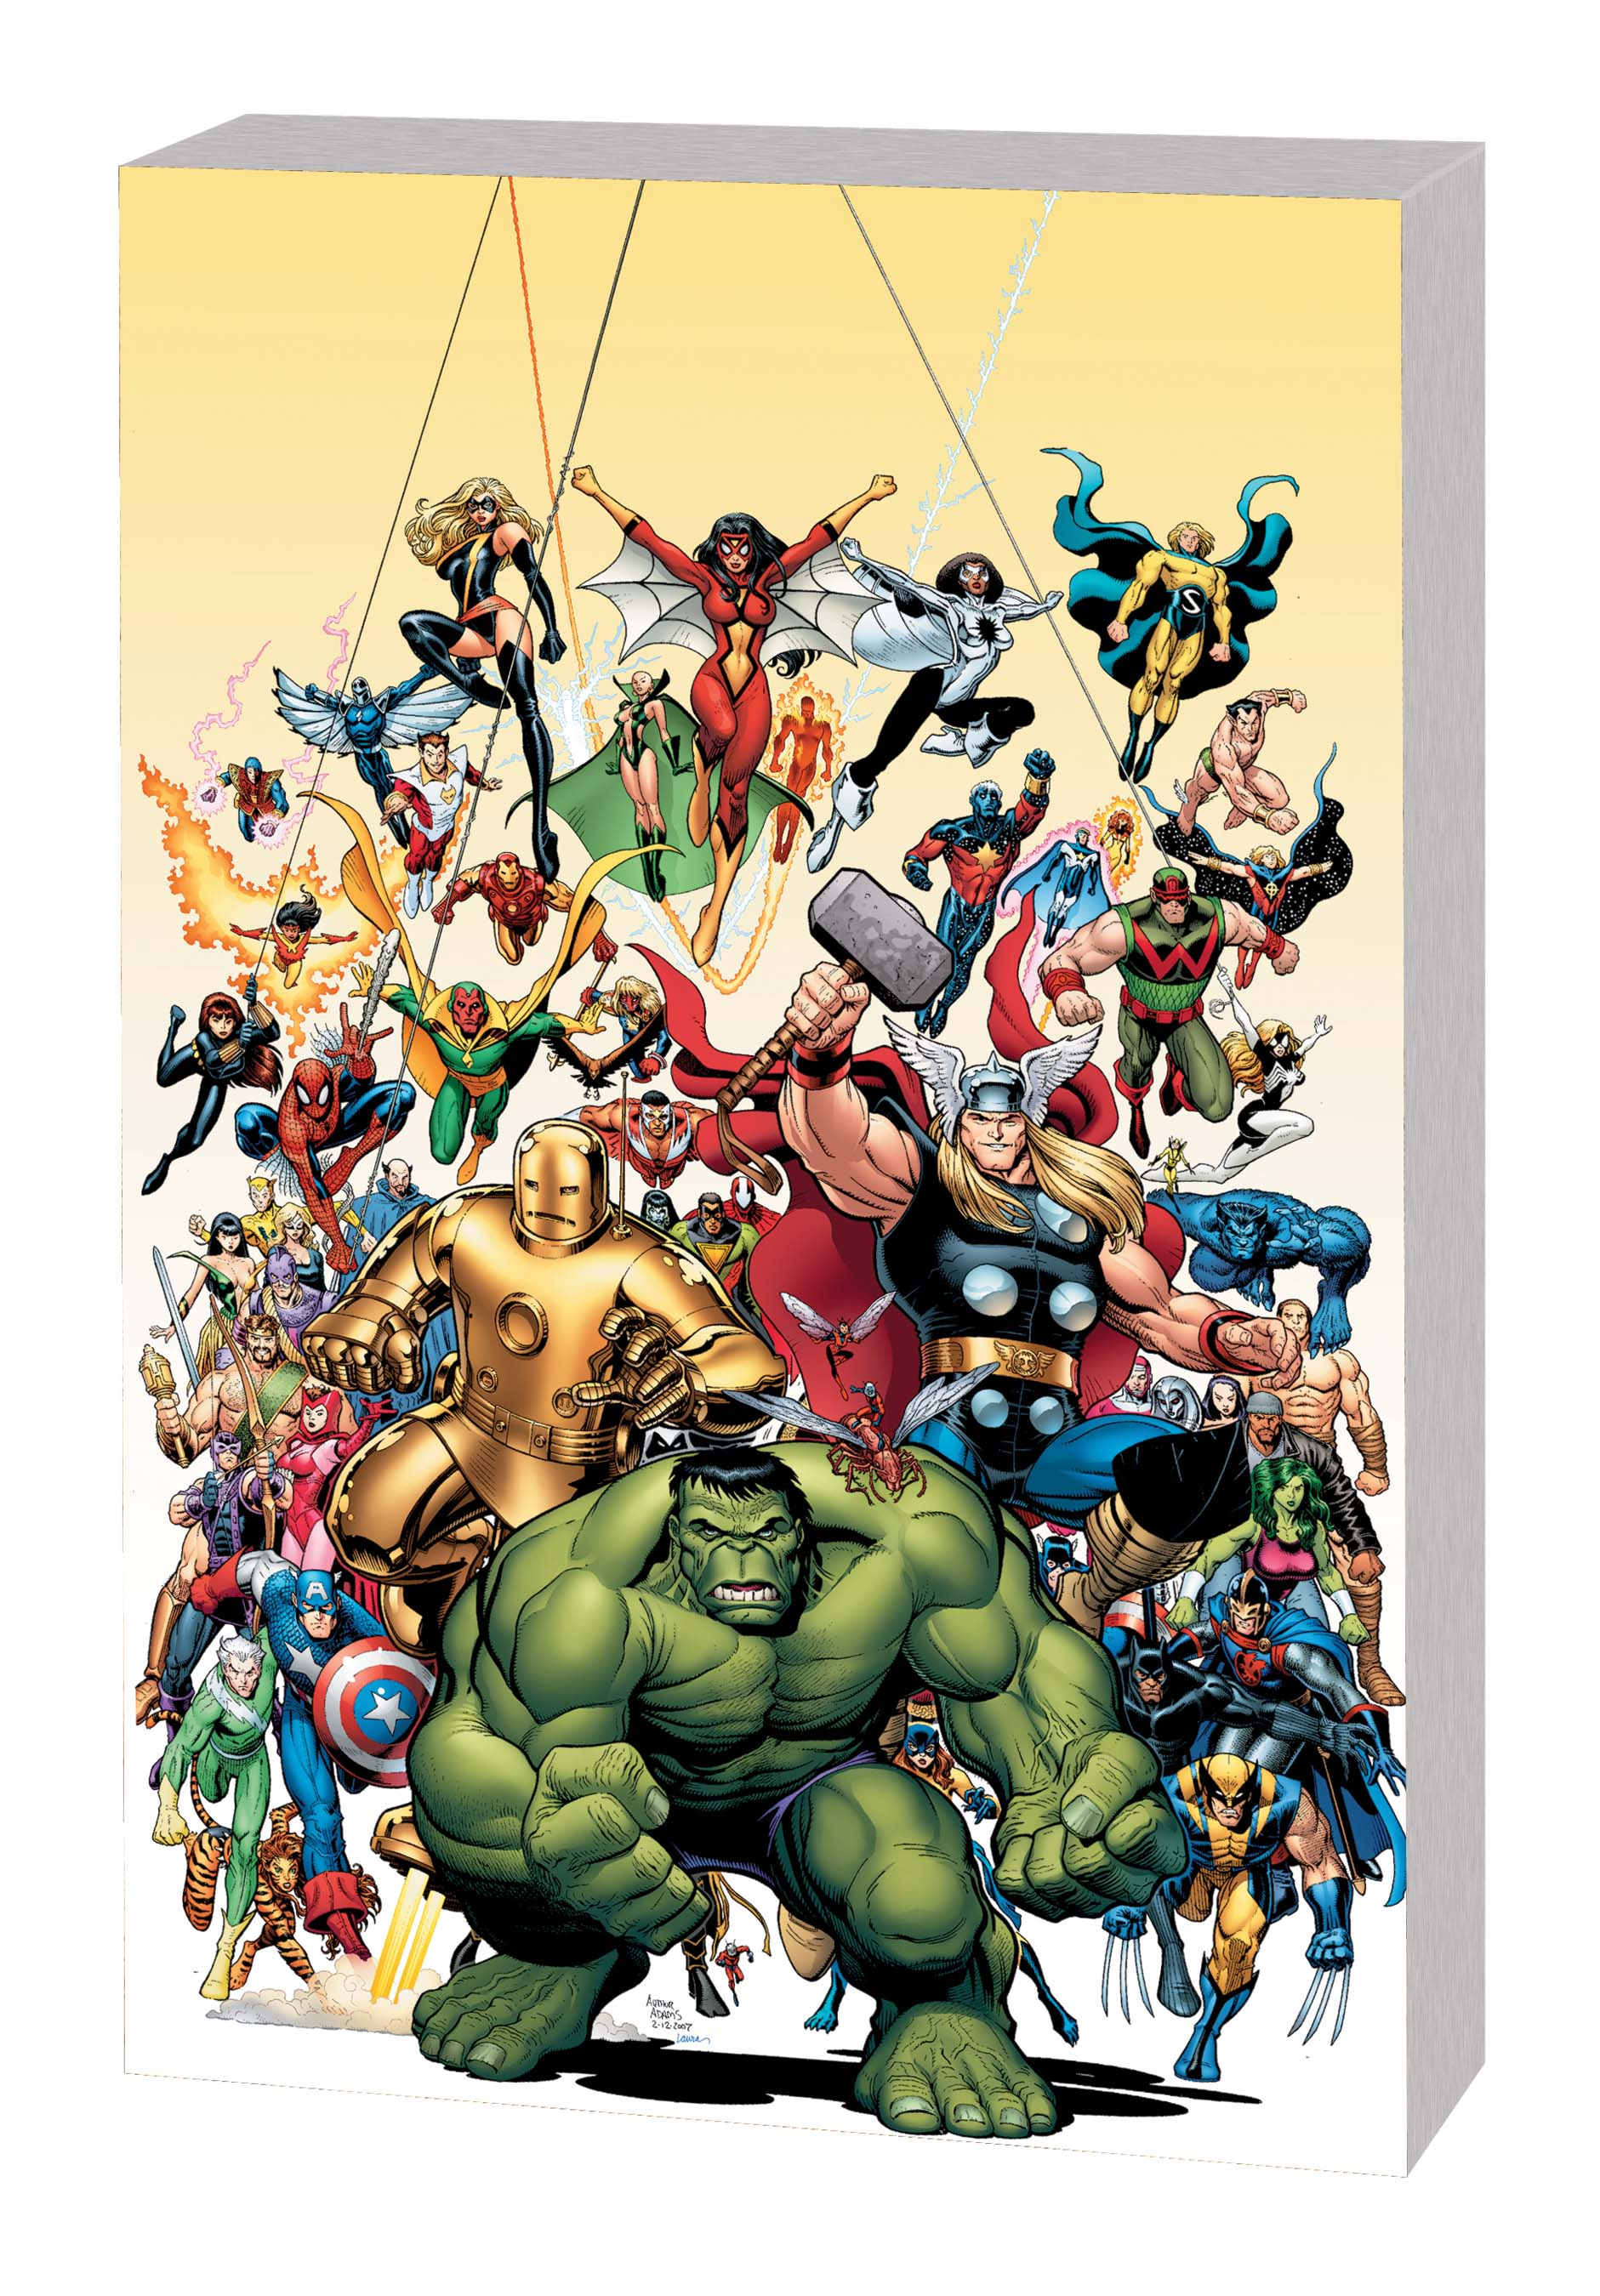 Avengers Assemble: An Oral History of Earth's Mightiest Heroes (Trade Paperback)